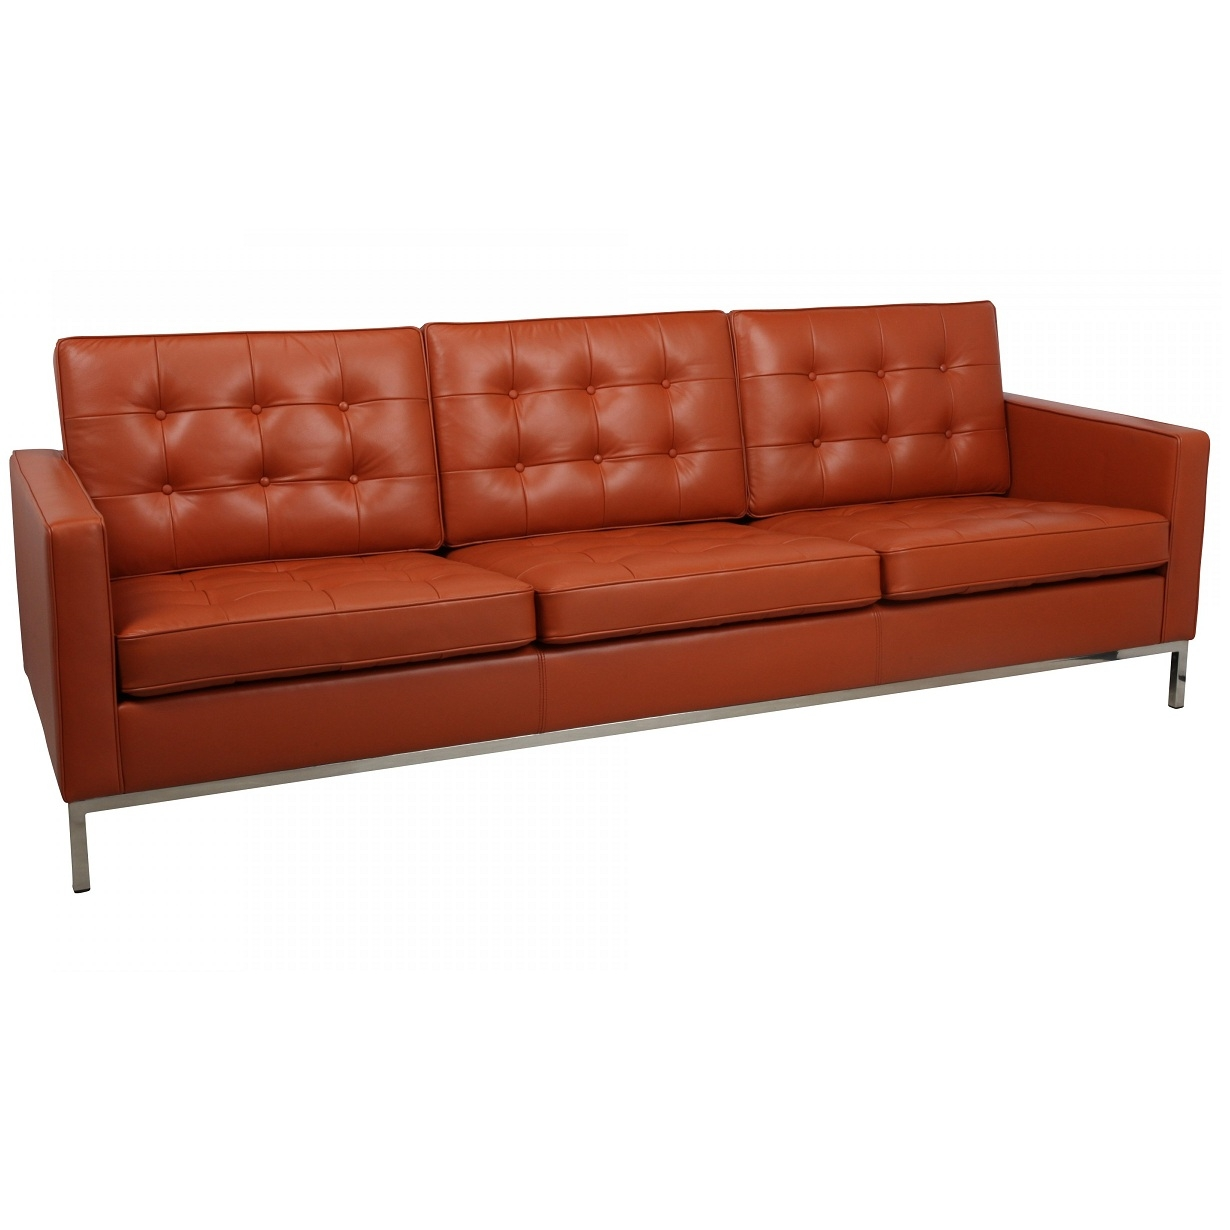 Aniline Leather Florence Knoll 3 Seat Sofa Next Day Delivery In Florence Knoll Leather Sofas (Image 1 of 15)